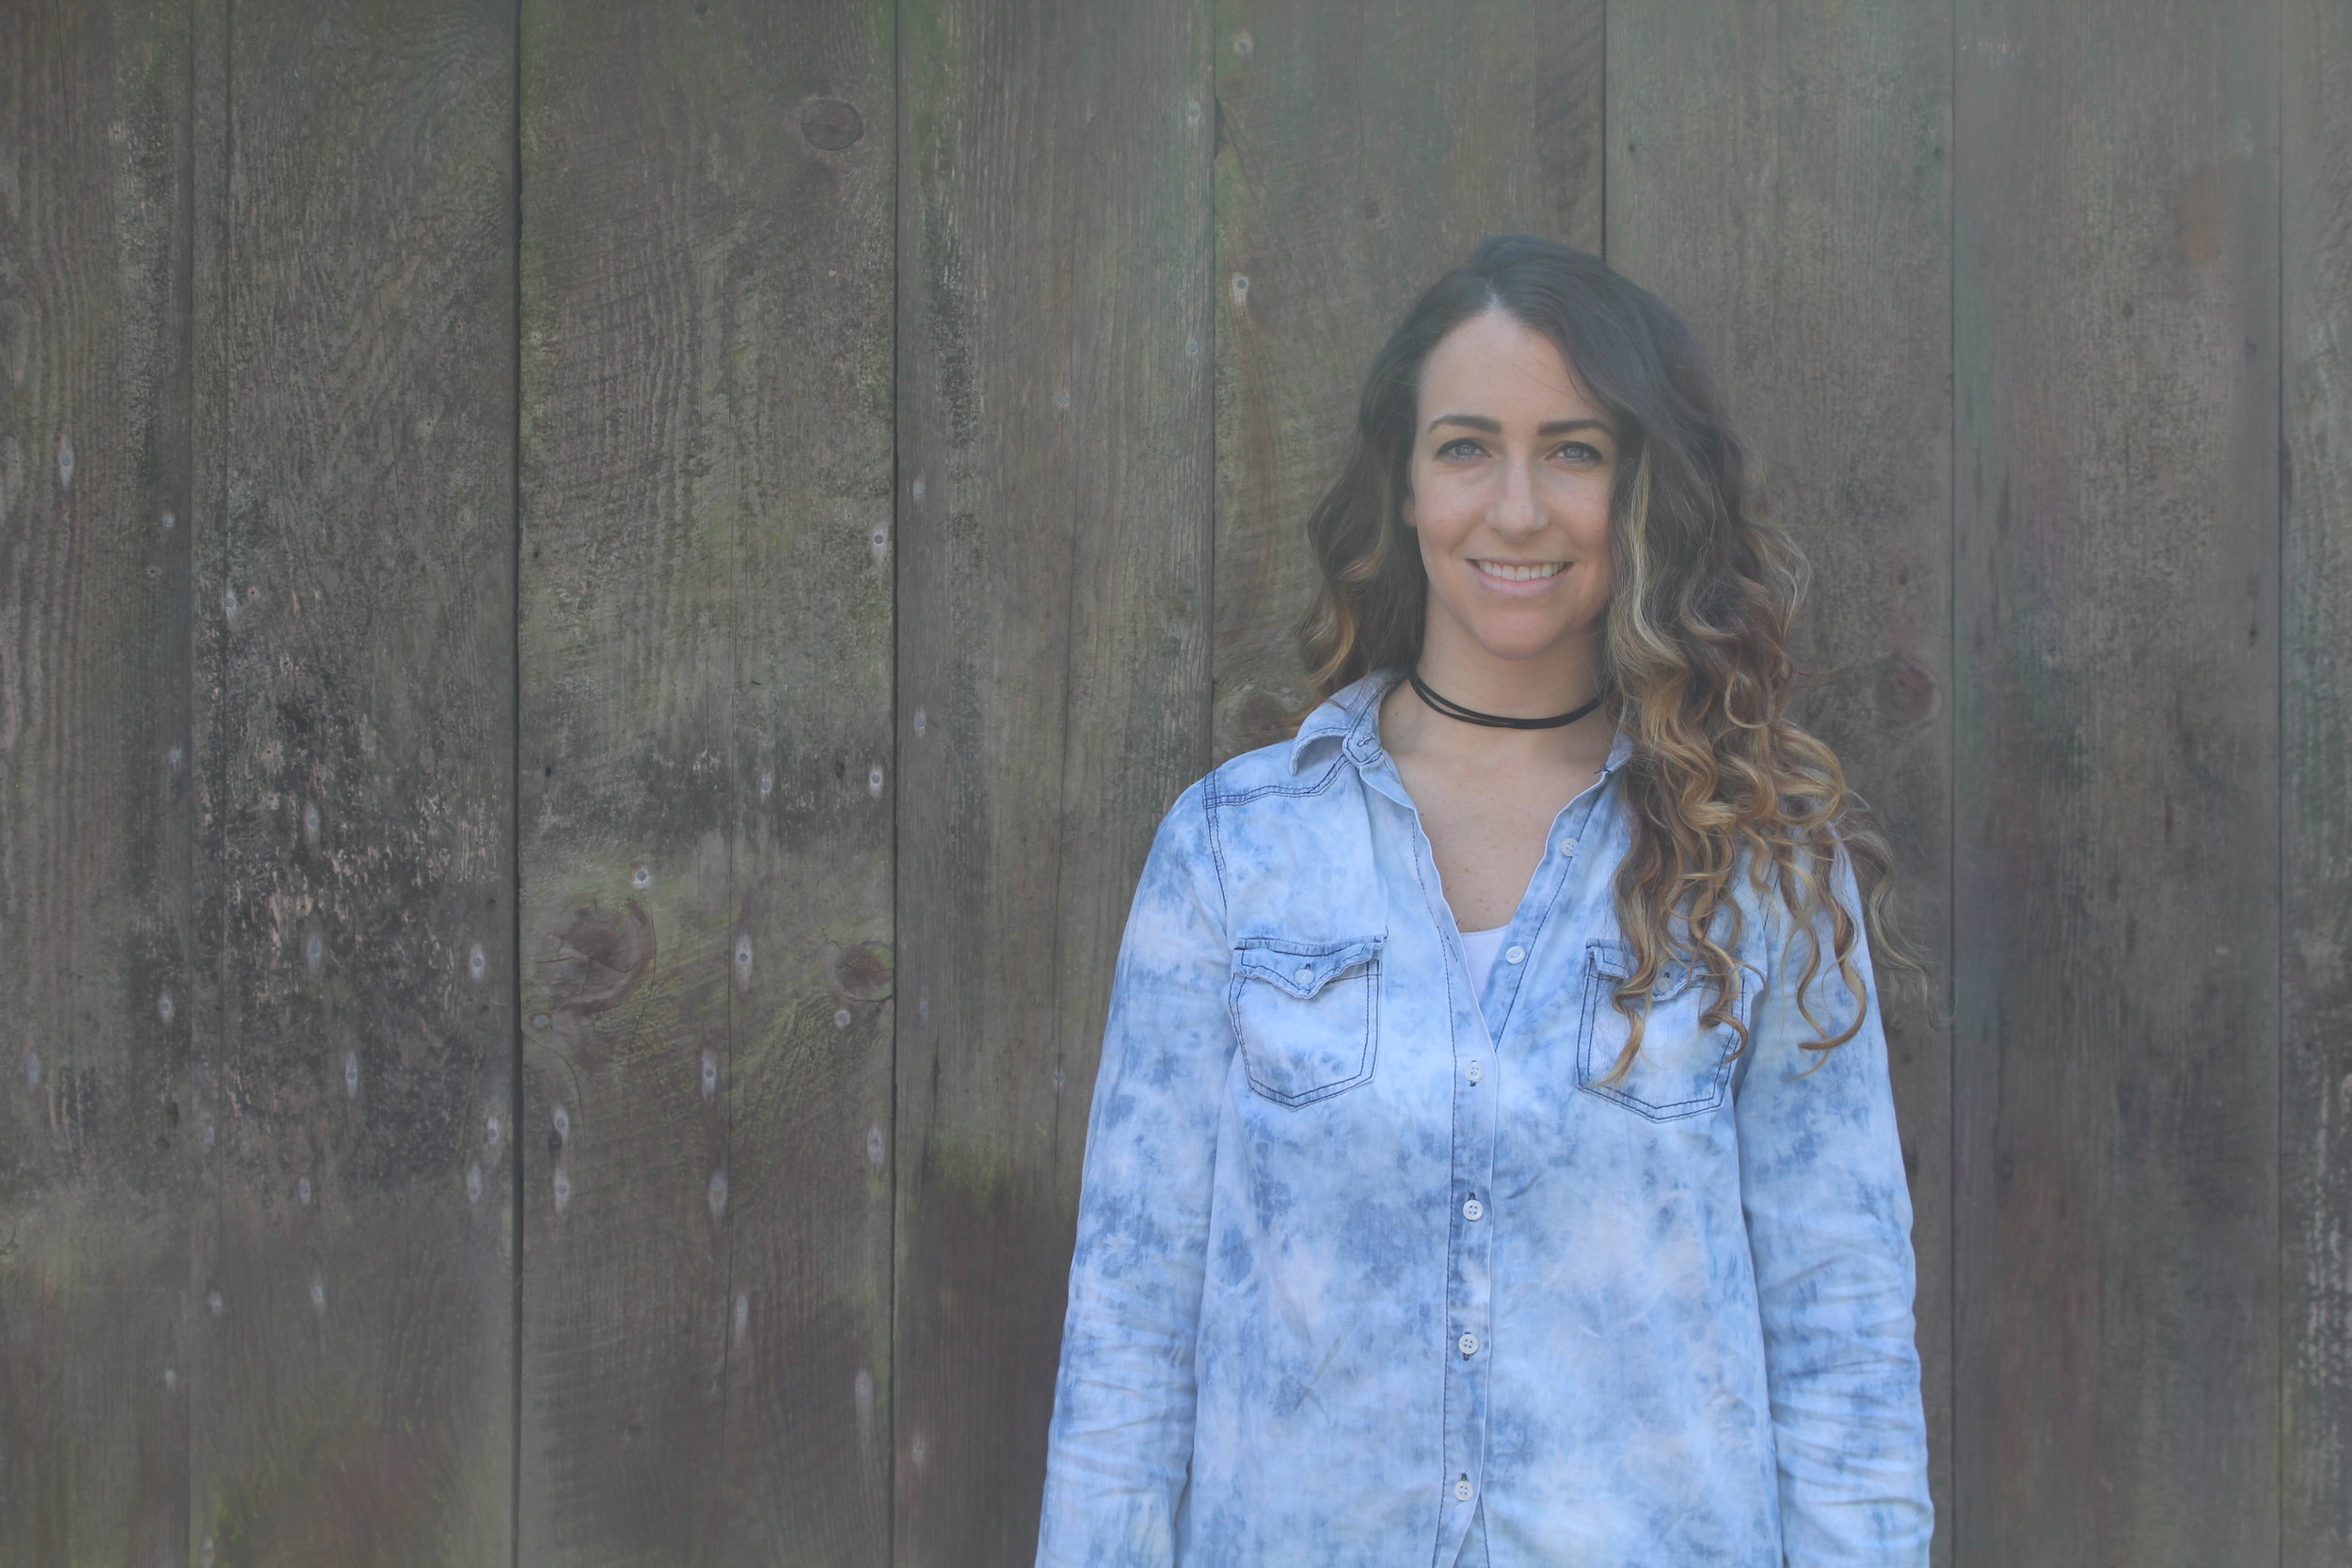 Bethany Gambardella is a Choreographer and mother of 2 girls.Wife to a bee keeper who loves white water rafting, crocheting and ping pong.